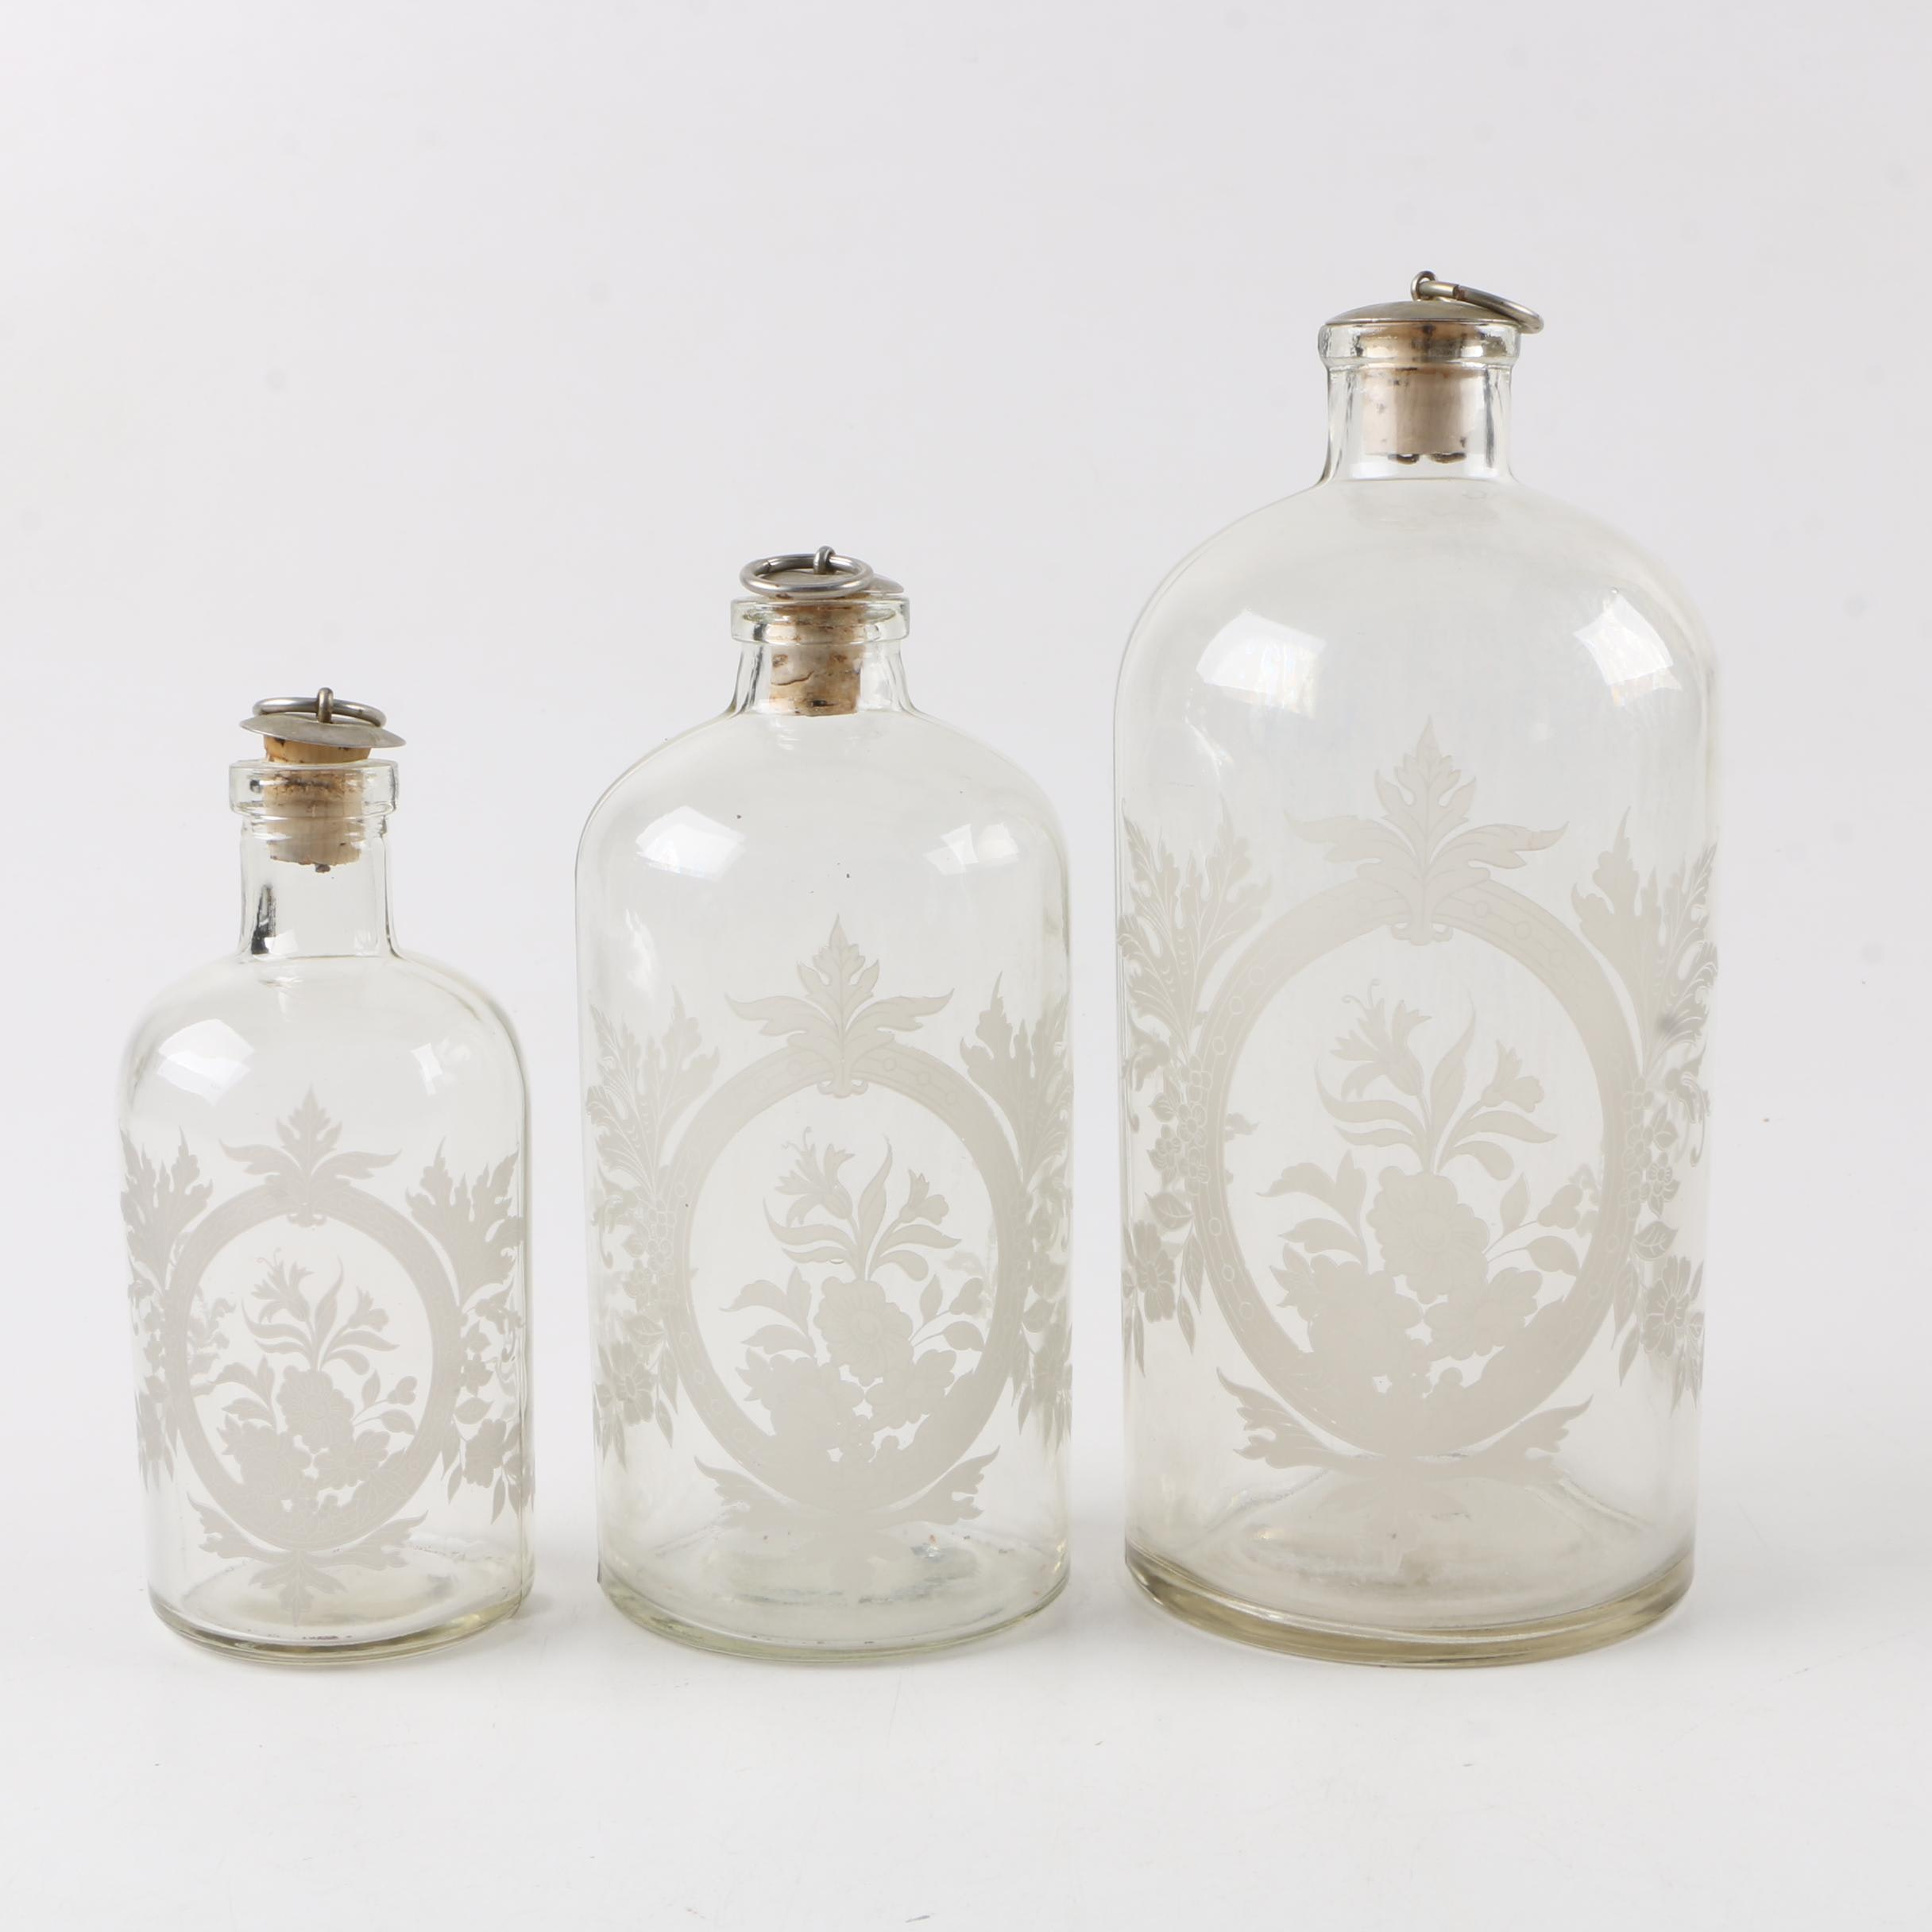 Vintage Etched Glass Apothecary Style Bottles and Cork Stoppers